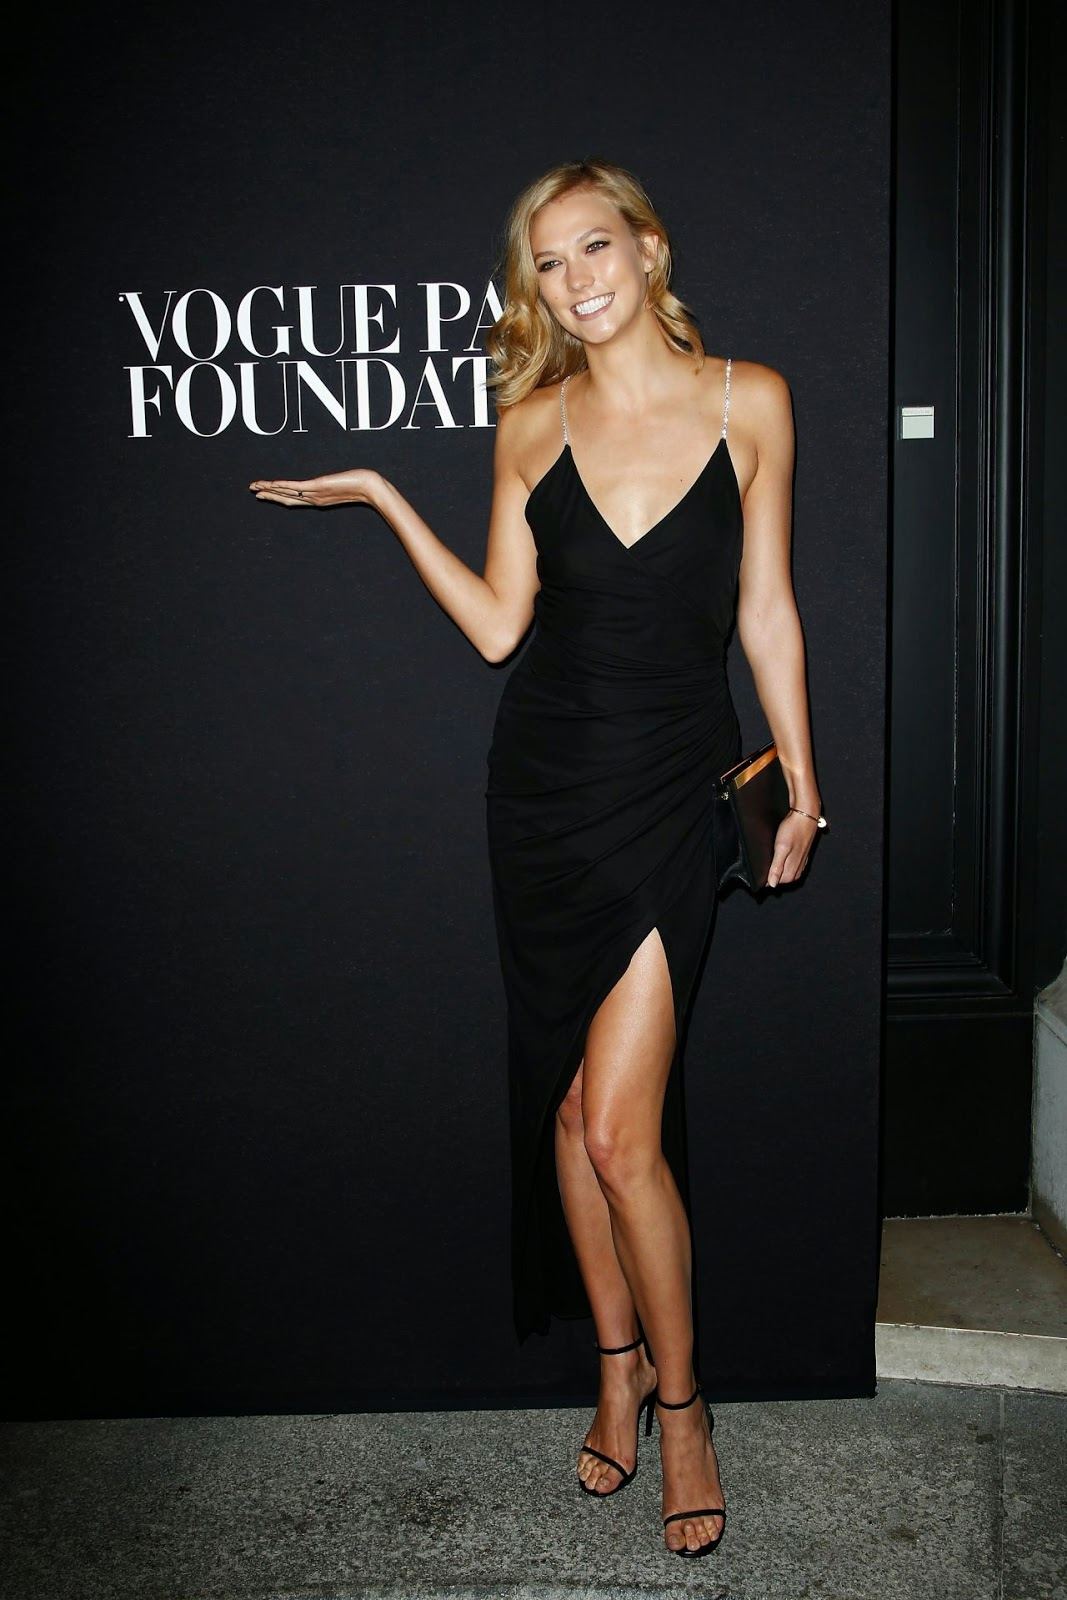 Karlie Kloss In A Slinky Black Dress With A Thigh Slit At